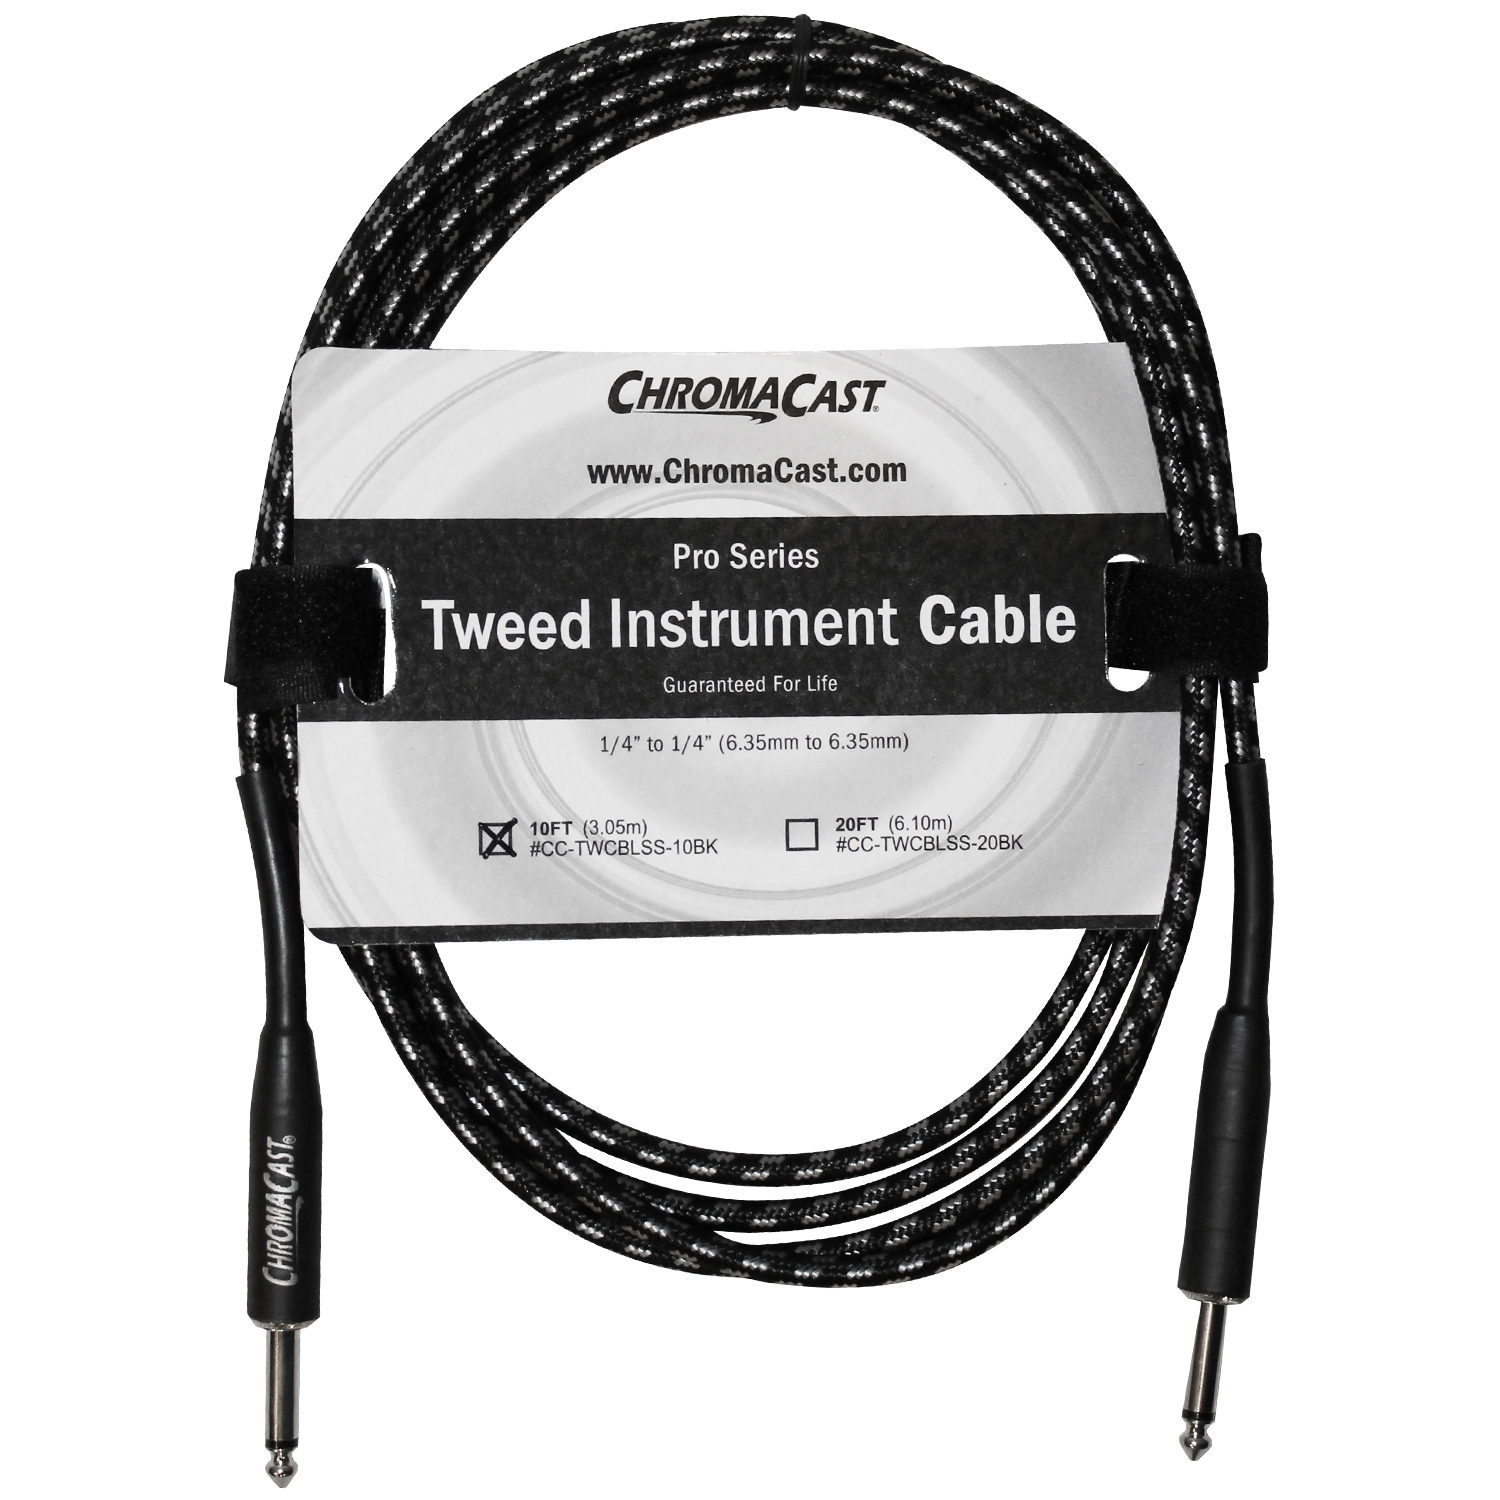 Tweed Pro Series Instrument Cable